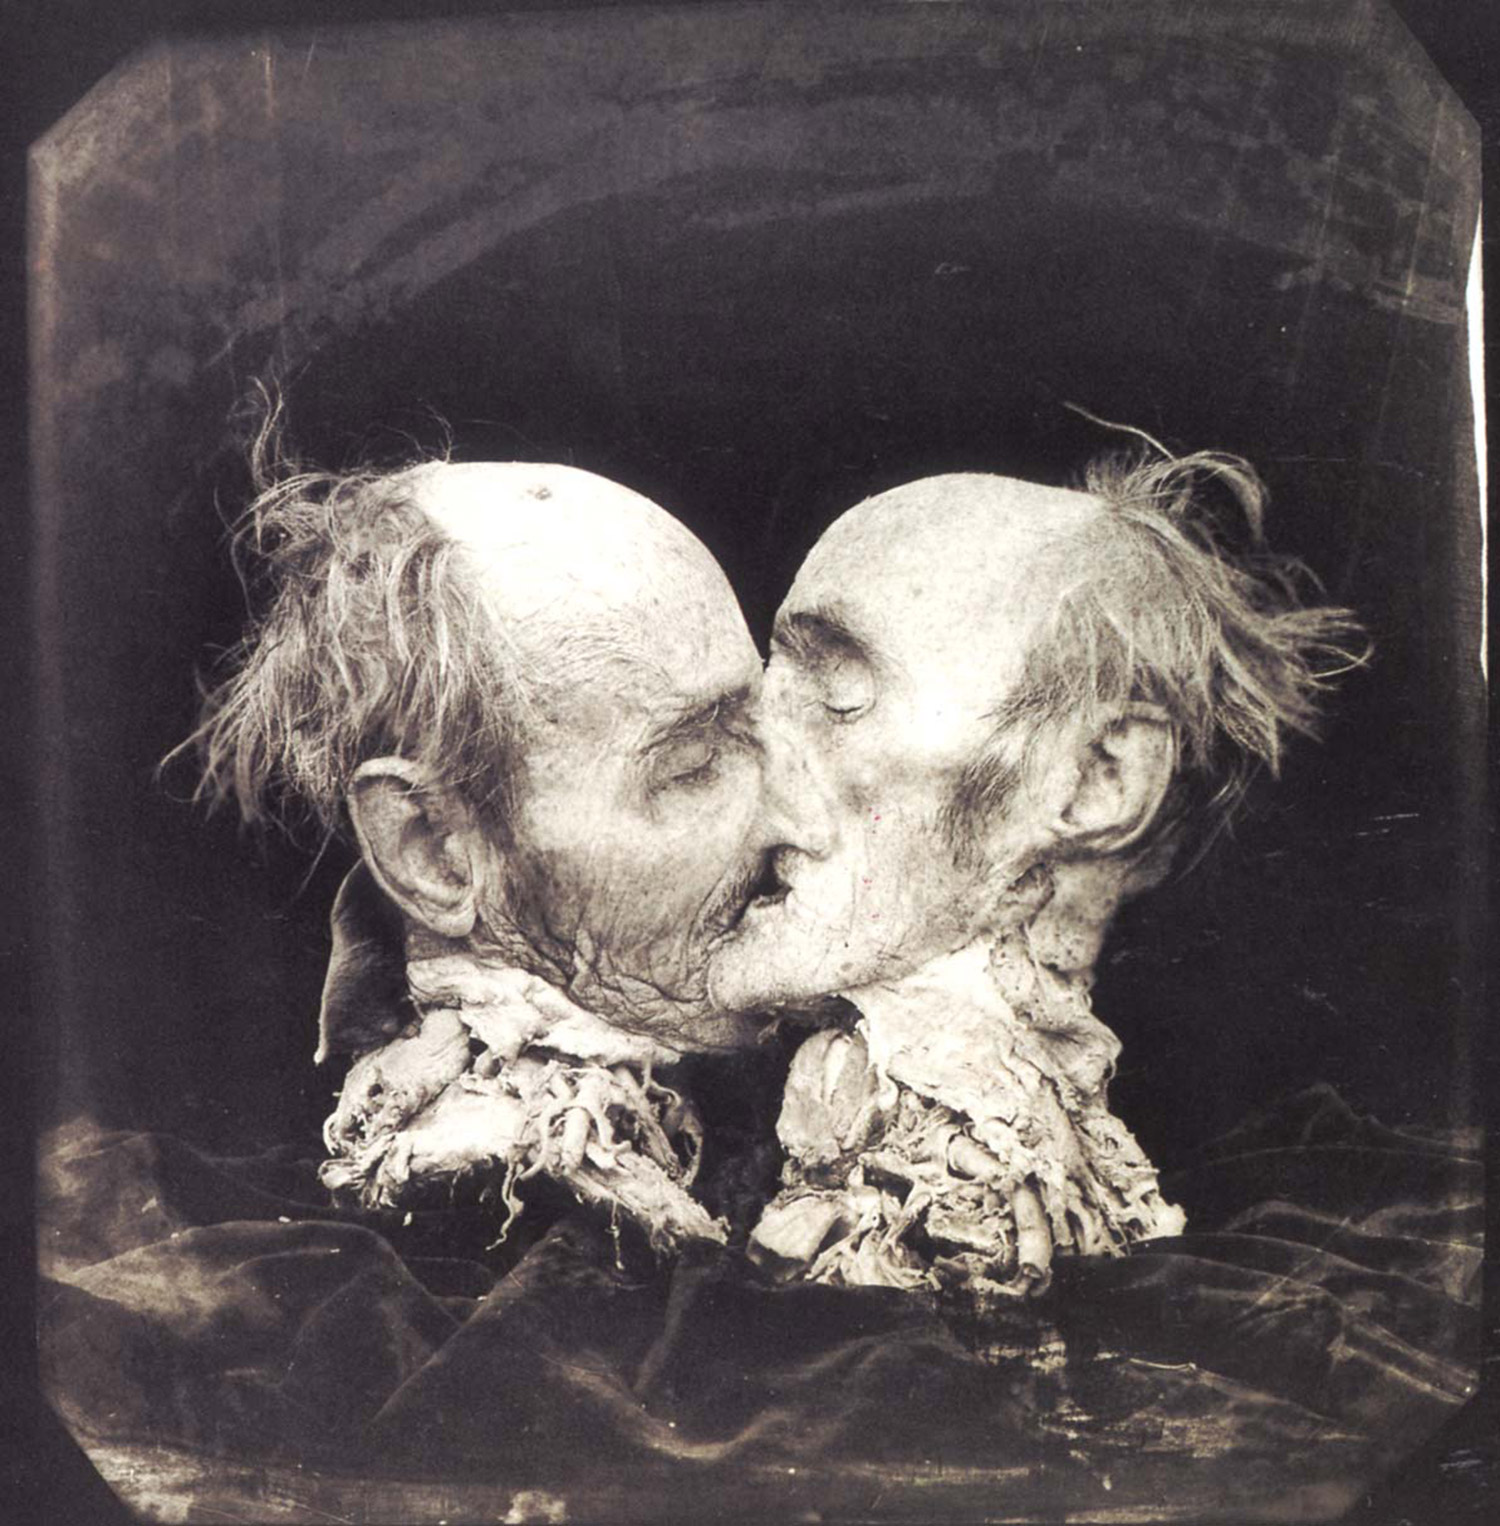 Joel Peter Witkin - black and white photo of two halves of severed head kissing